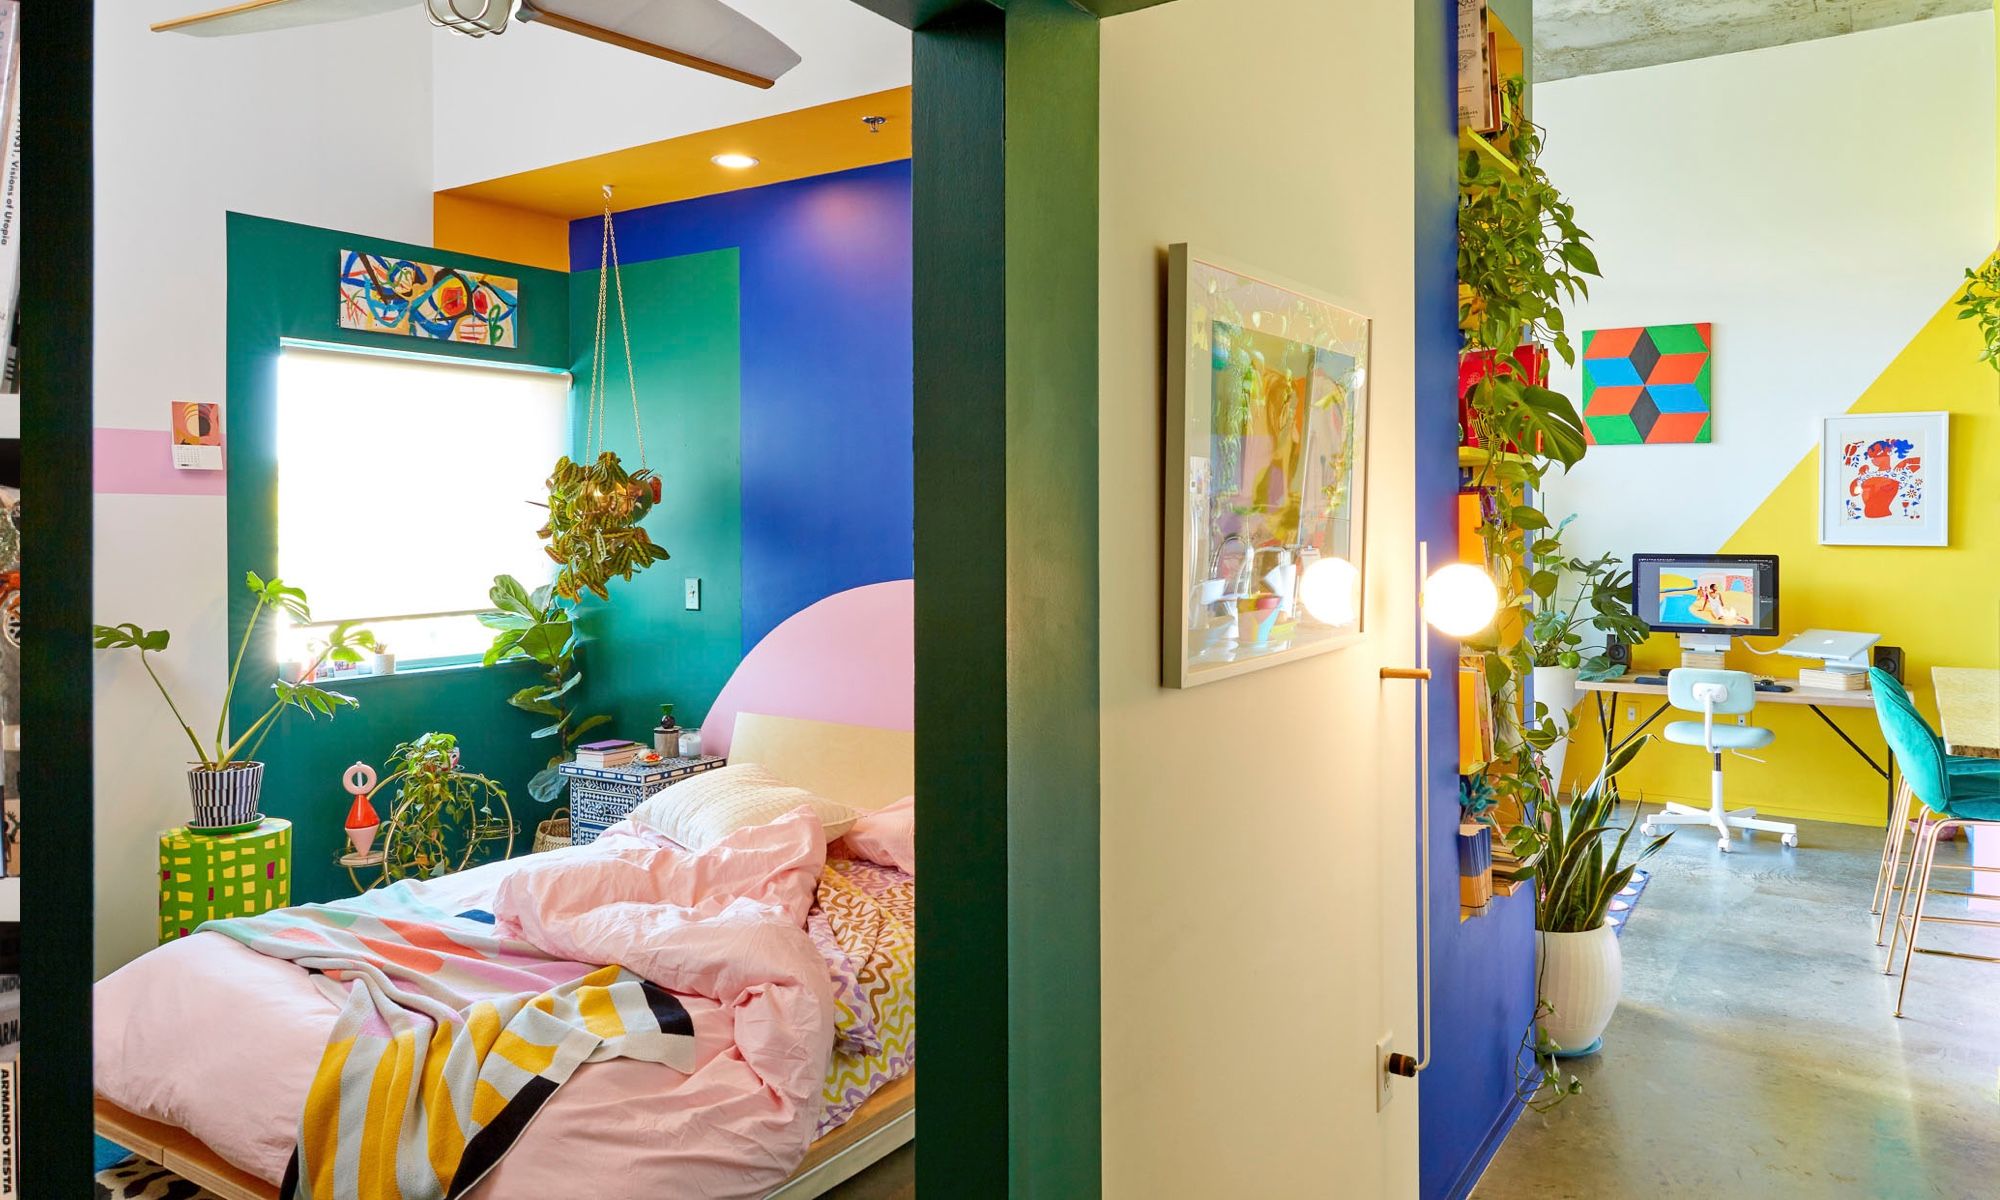 The green and blue from the living space flow into the bedroom.